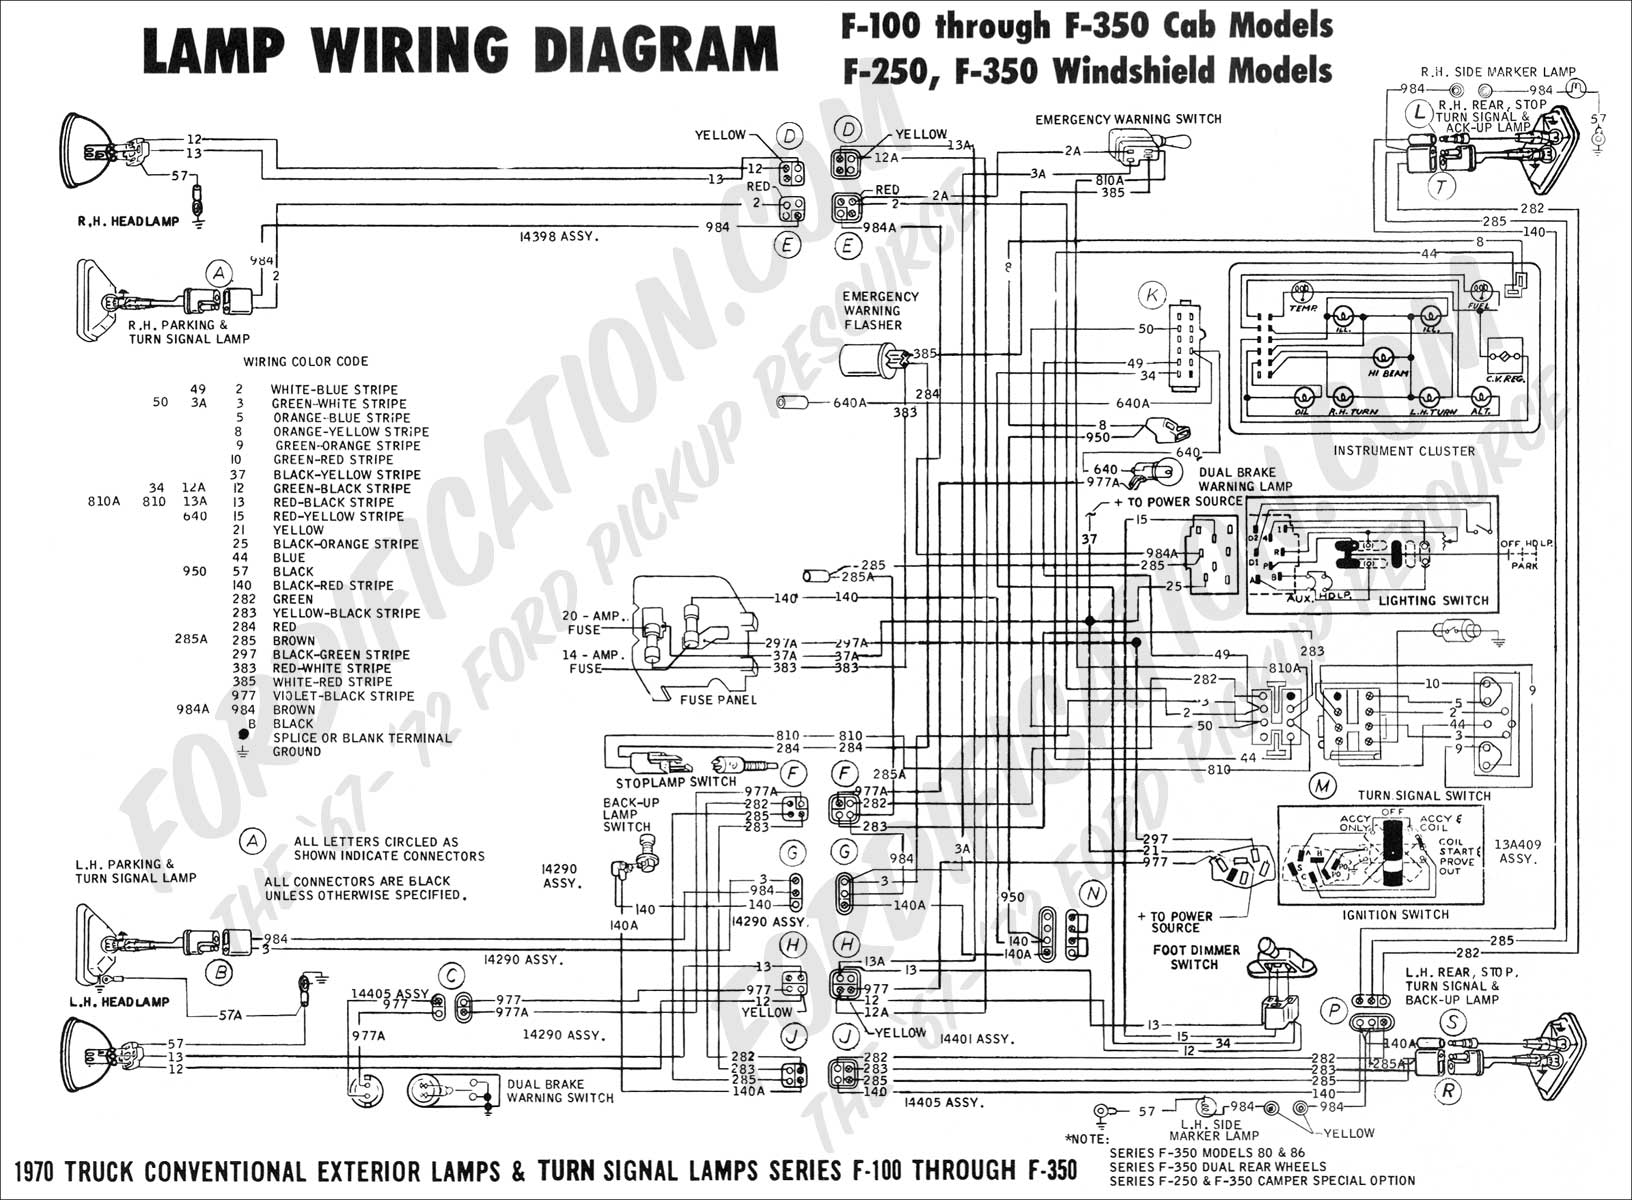 wiring diagram_70ext lights01 ford f250 wiring diagram online f250 trailer wiring diagram wiring diagram for 2002 f250 starter at soozxer.org